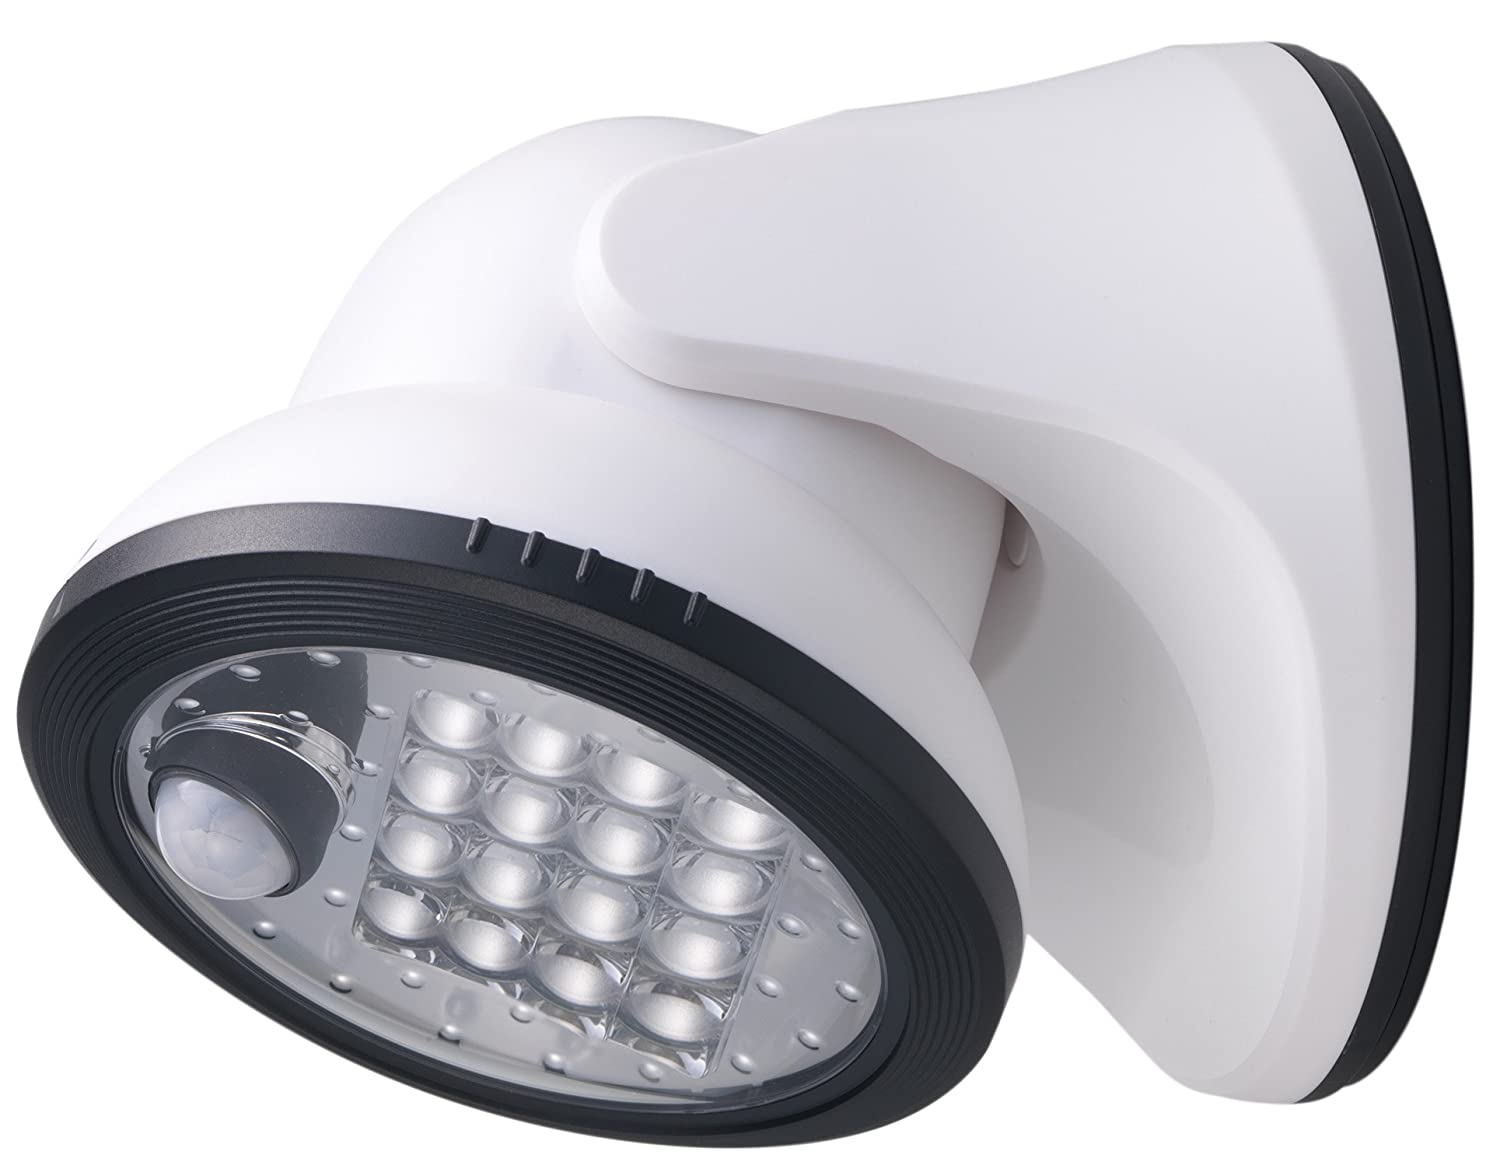 LIGHT IT! By Fulcrum, 16-LED Motion Sensor Security Light, Battery Operated, White